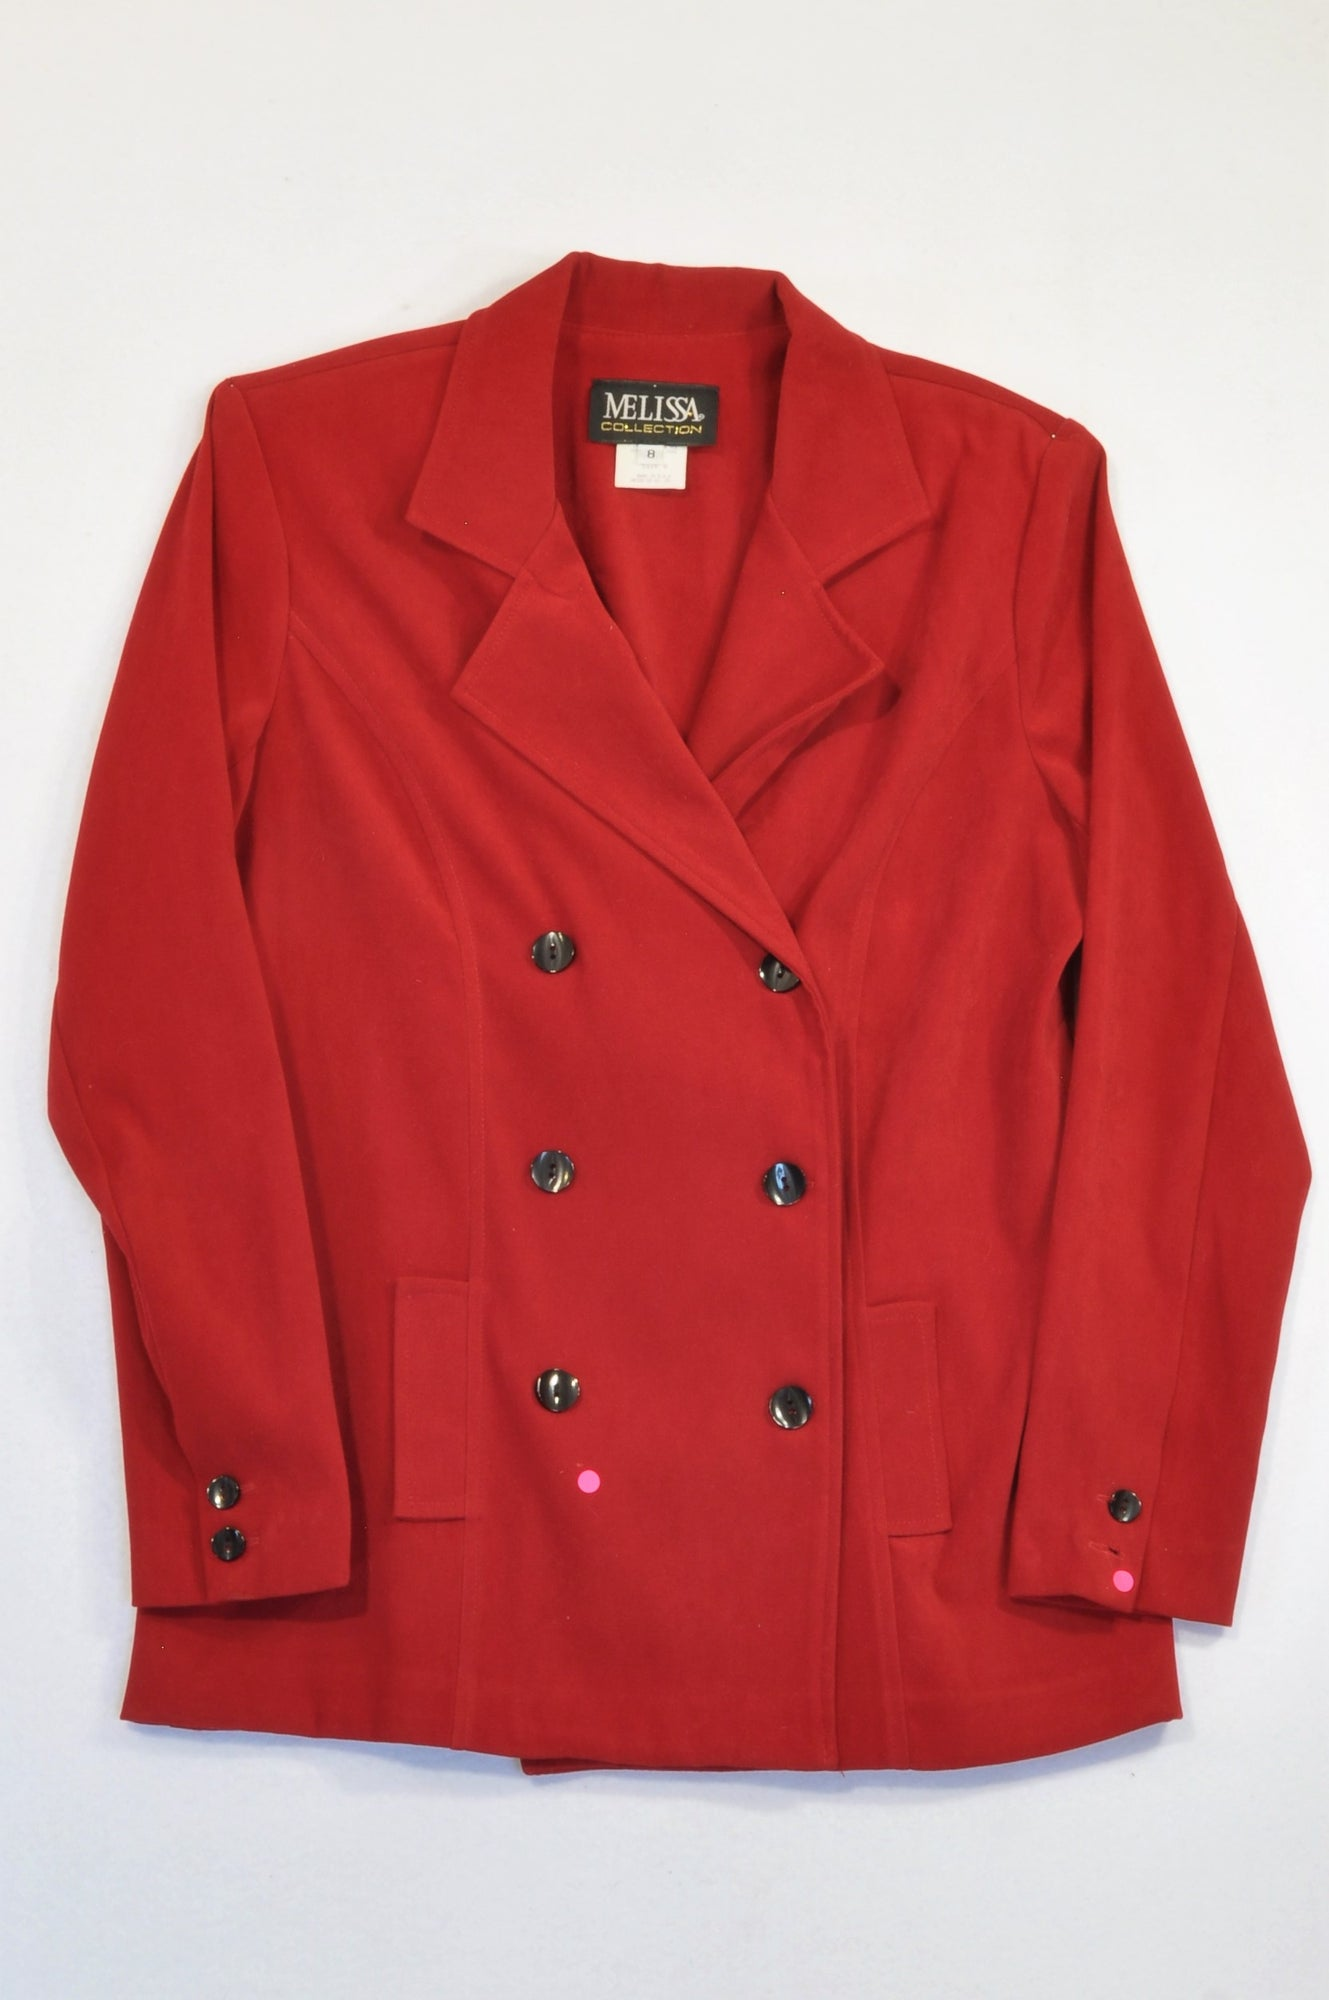 Melissa Collection Red Soft Material Double Breasted Jacket Women Size 10